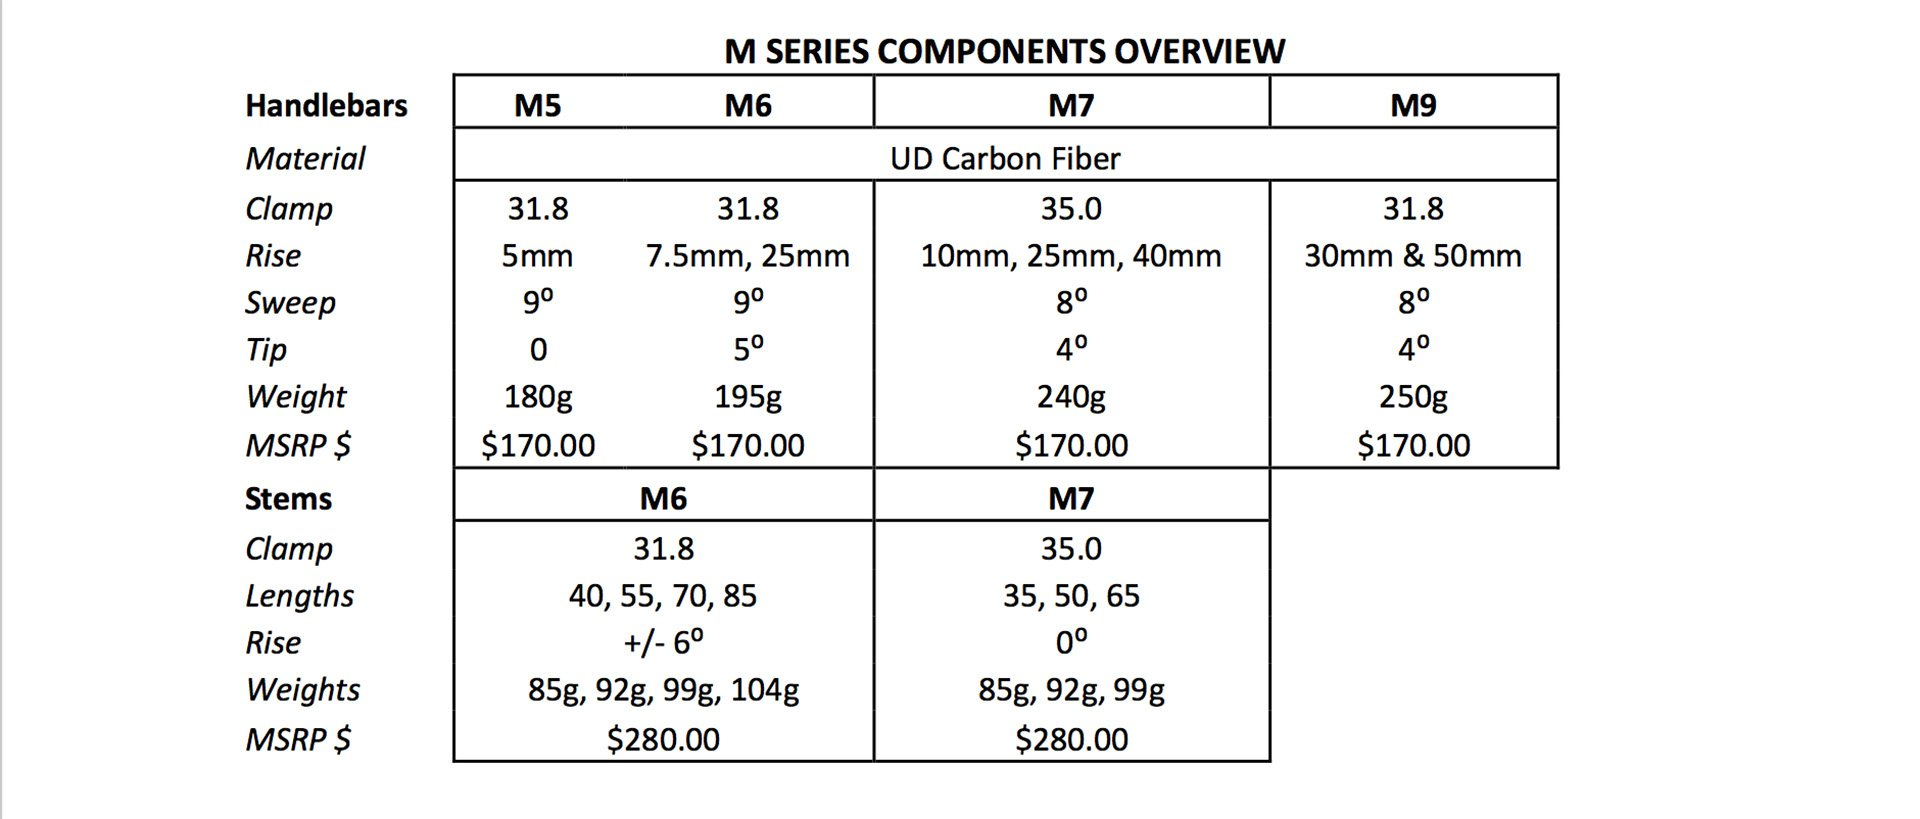 M Series bars and stem overview